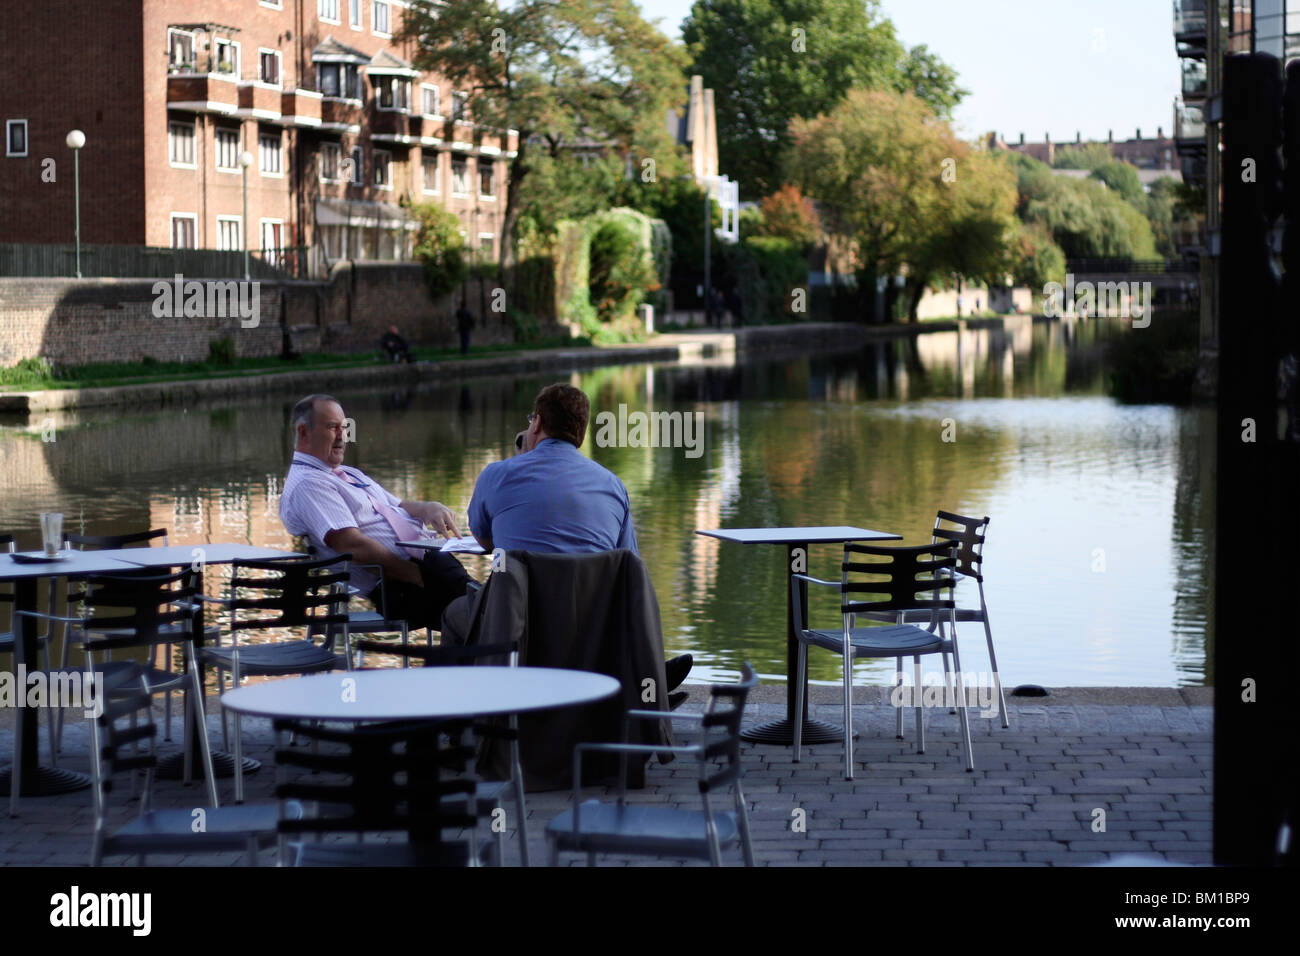 two bussiness men sat having lunch by the river/ canal in london near kings cross and camden. - Stock Image